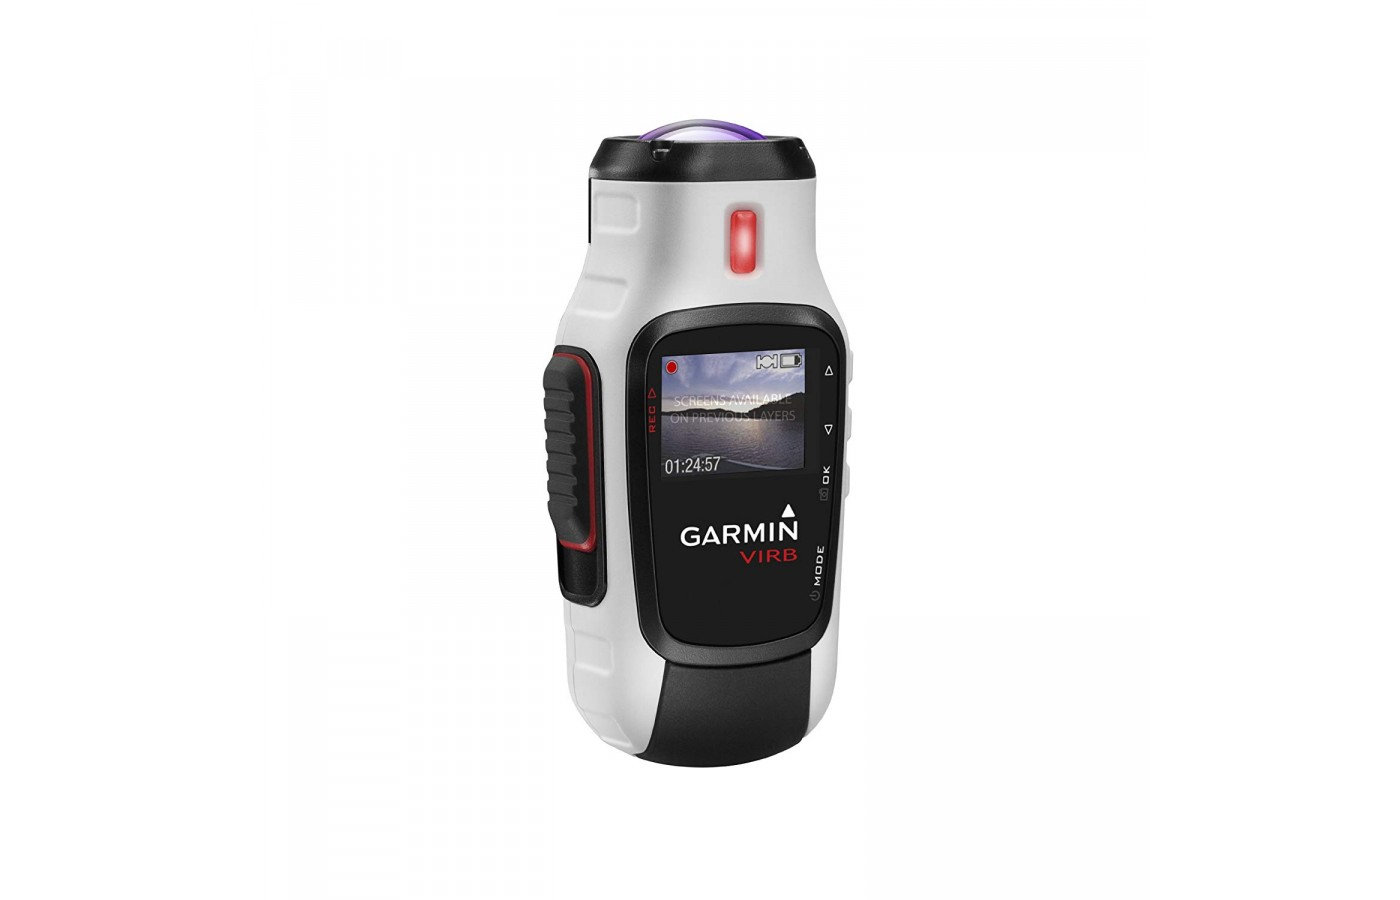 The Garmin Virb Elite has a digital Image Stabilization for a clearer picture.